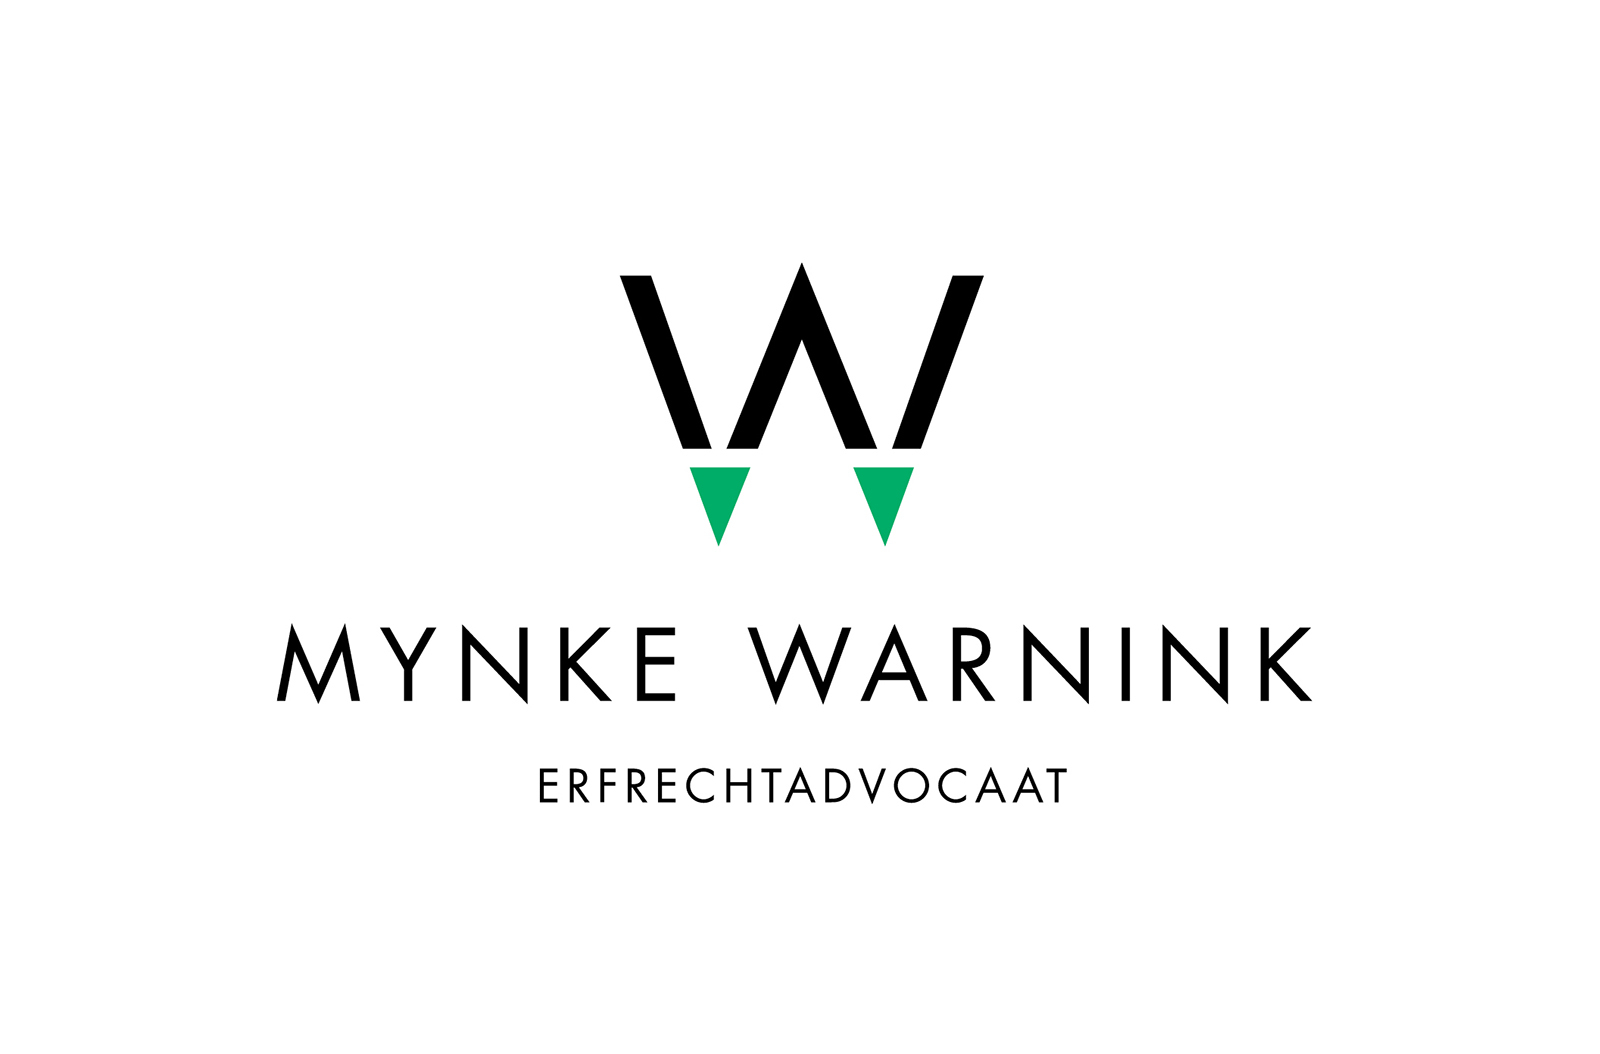 Mynke Warnink nw4